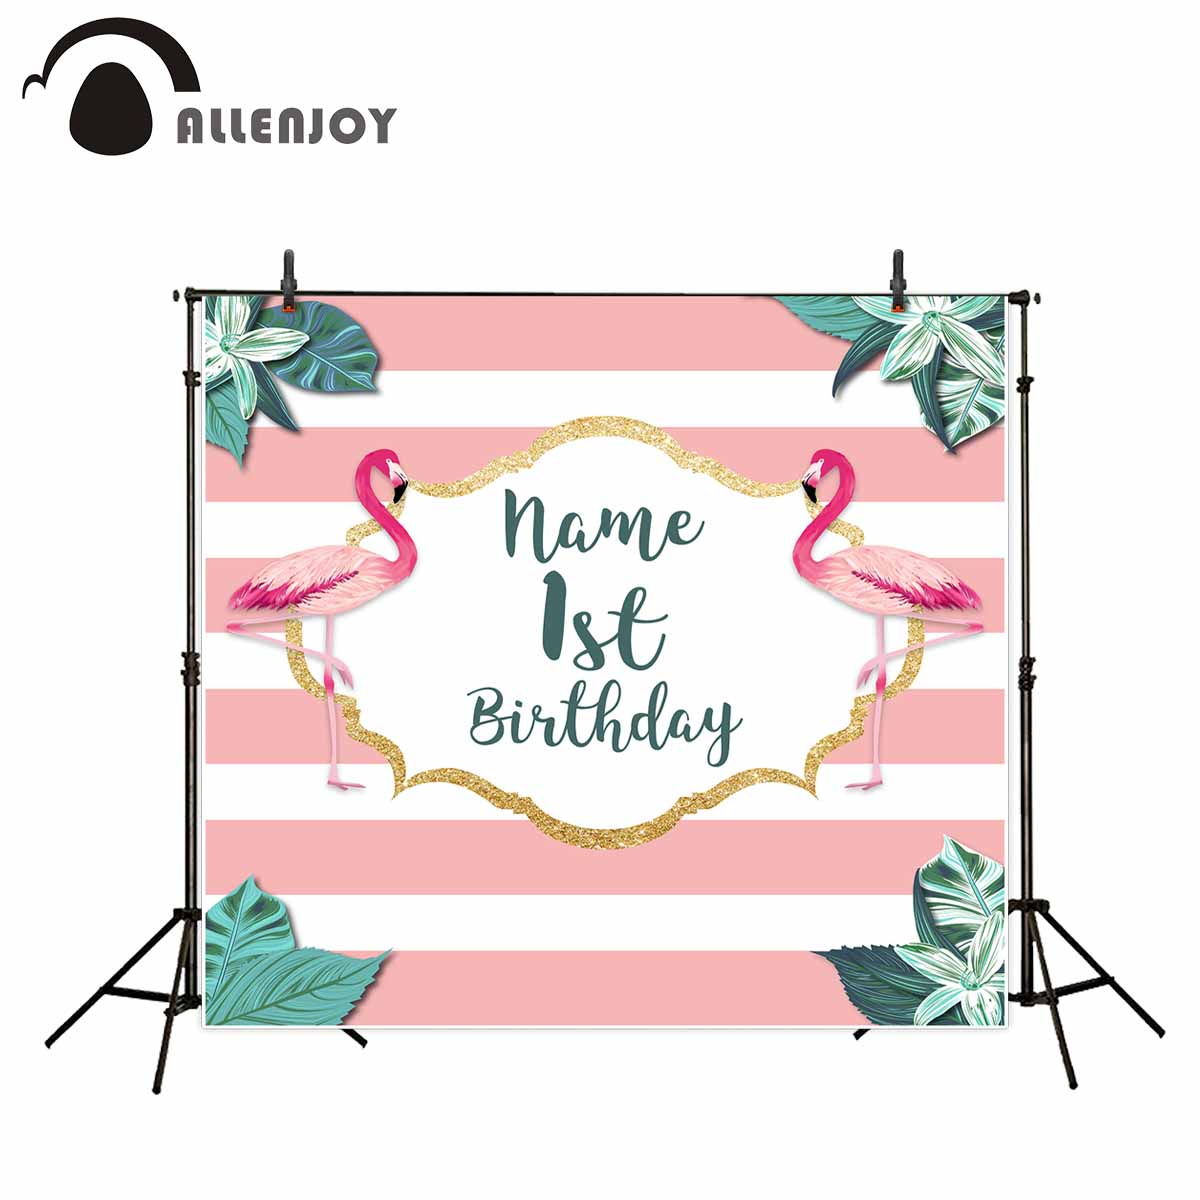 Allenjoy photography background pink flamingo and leaves theme Birthday party backdrop photography studio camera fotografica fabric birthday party backdrop balloon and paper craft photography backdrop for photo studio photography background s 2132 c